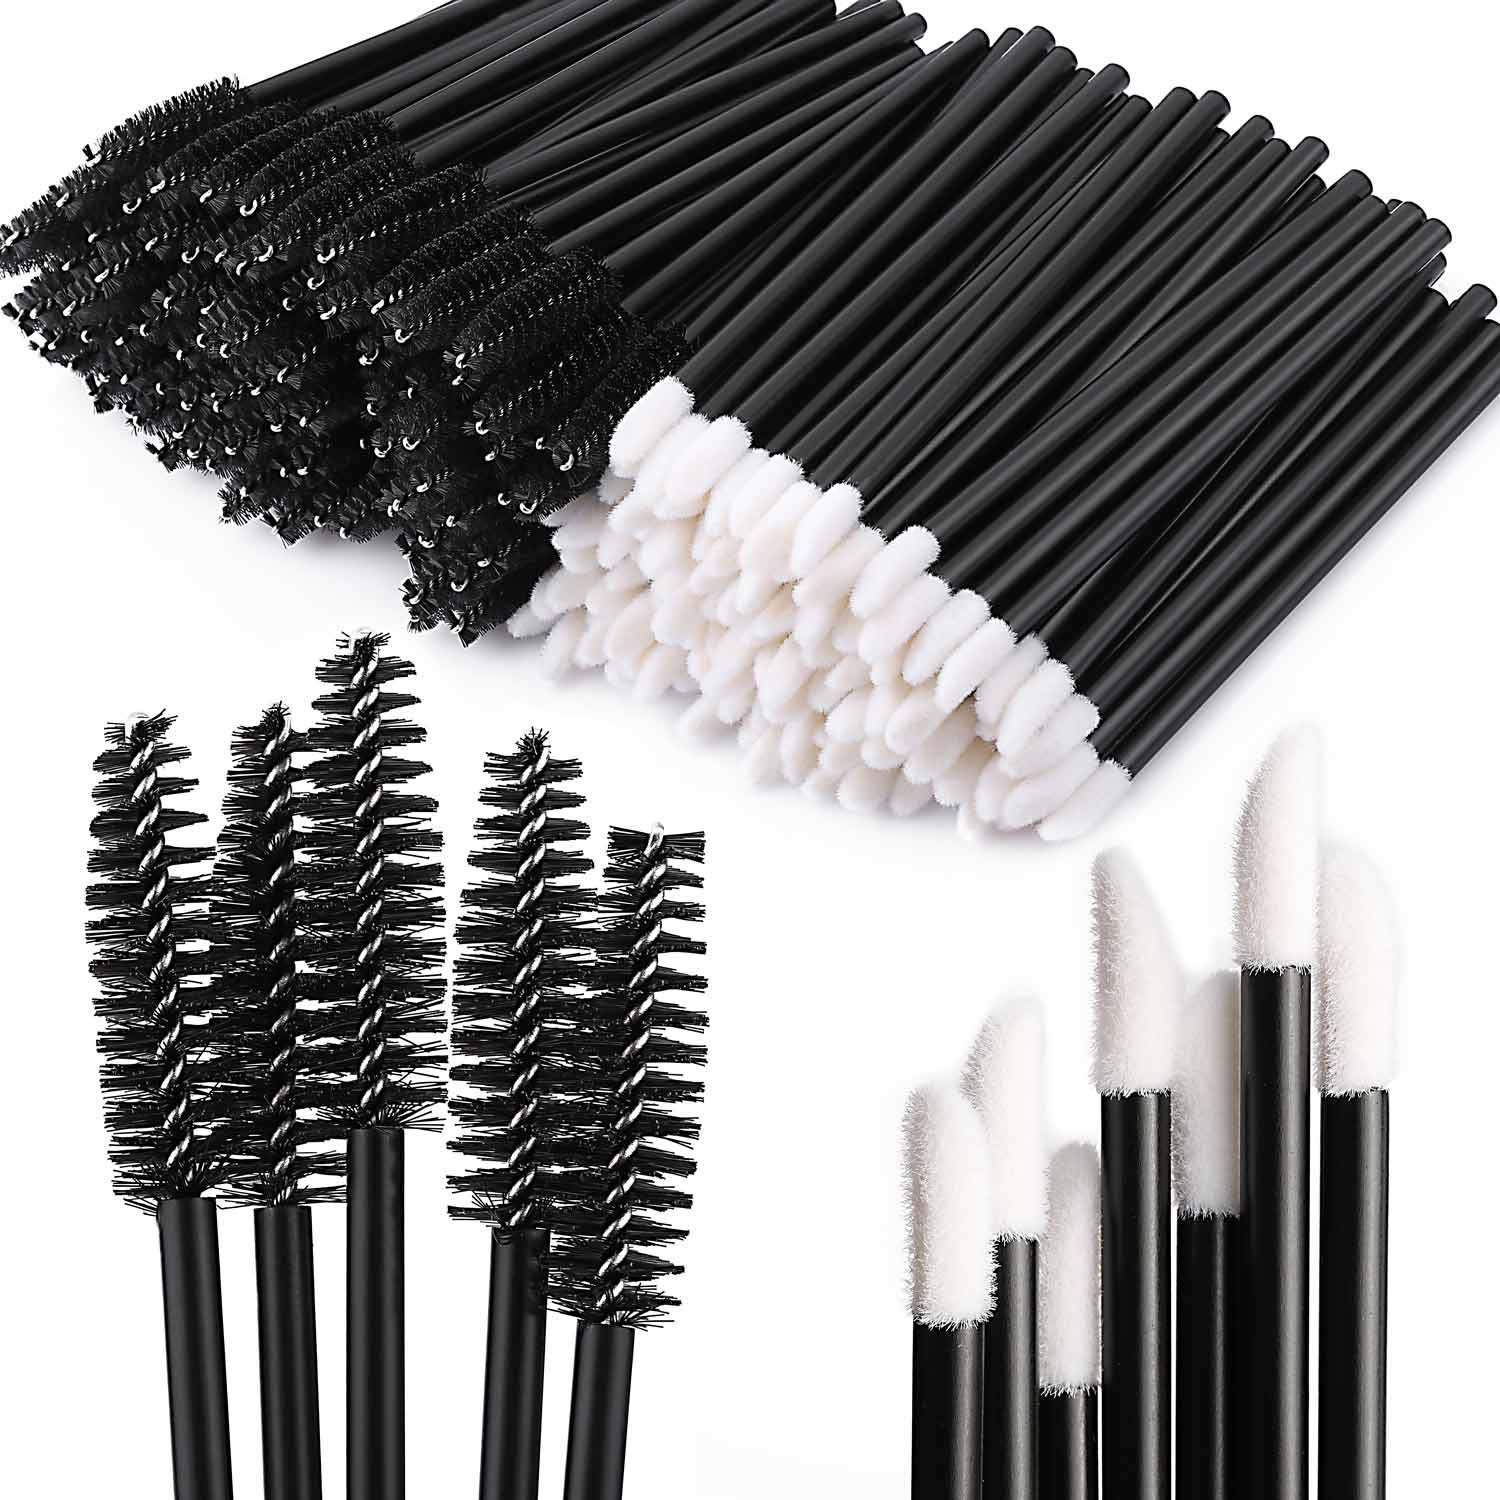 Tbestmax 200 Disposable Mascara Wand Spoolies and Lip Brushes, Lipstick Lipgloss Applicator for Eyebrow Eyelash Extension Makeup Kits: Beauty